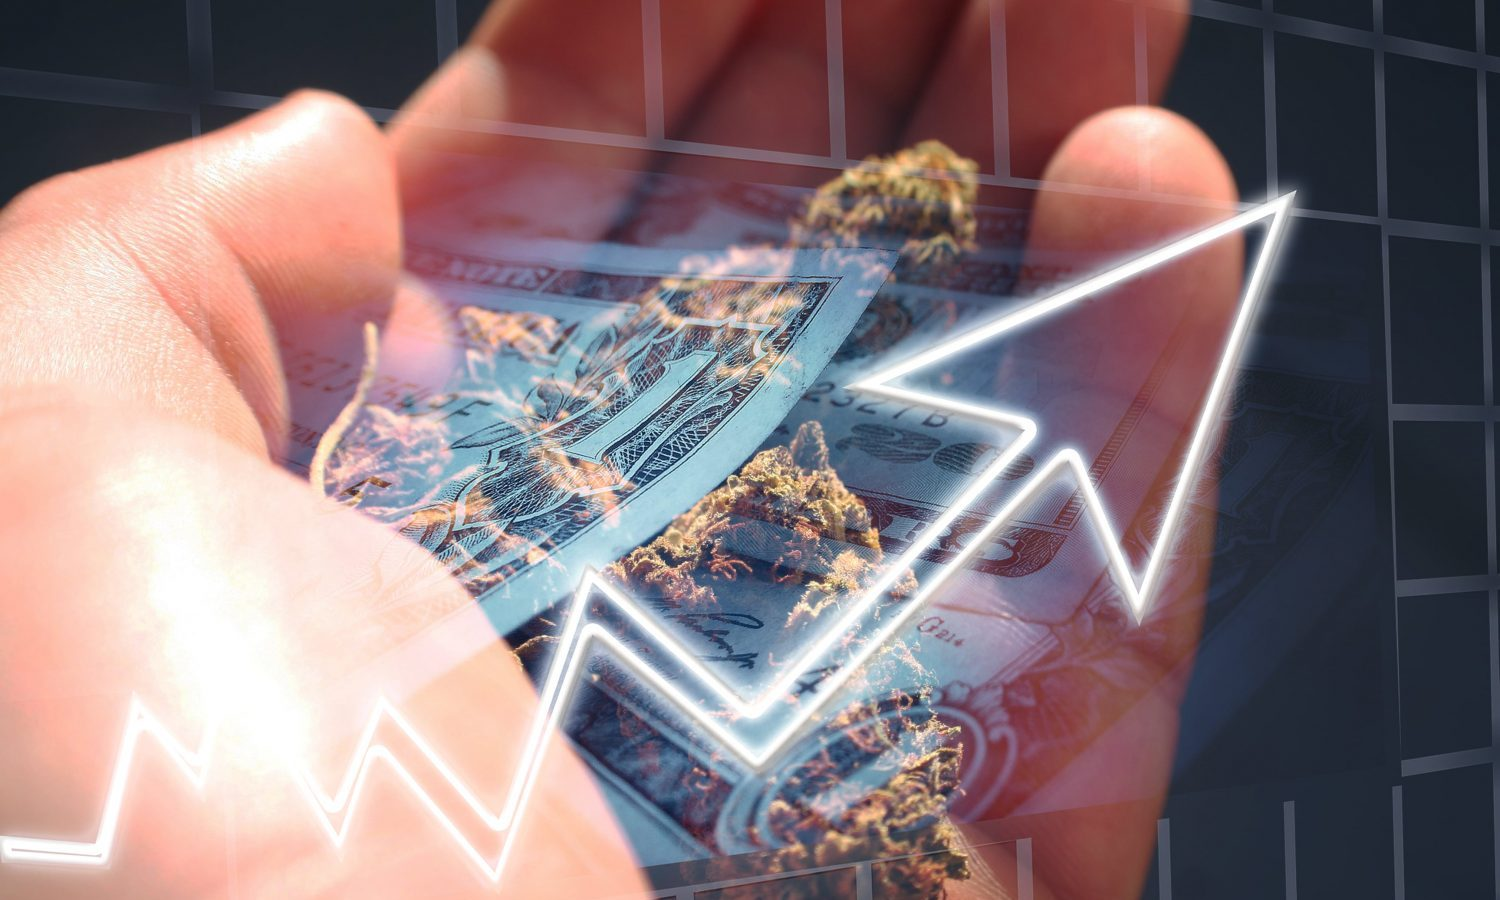 Existence Of Cannabis Investment Boom Remains Up For Debate, Say Industry Insiders